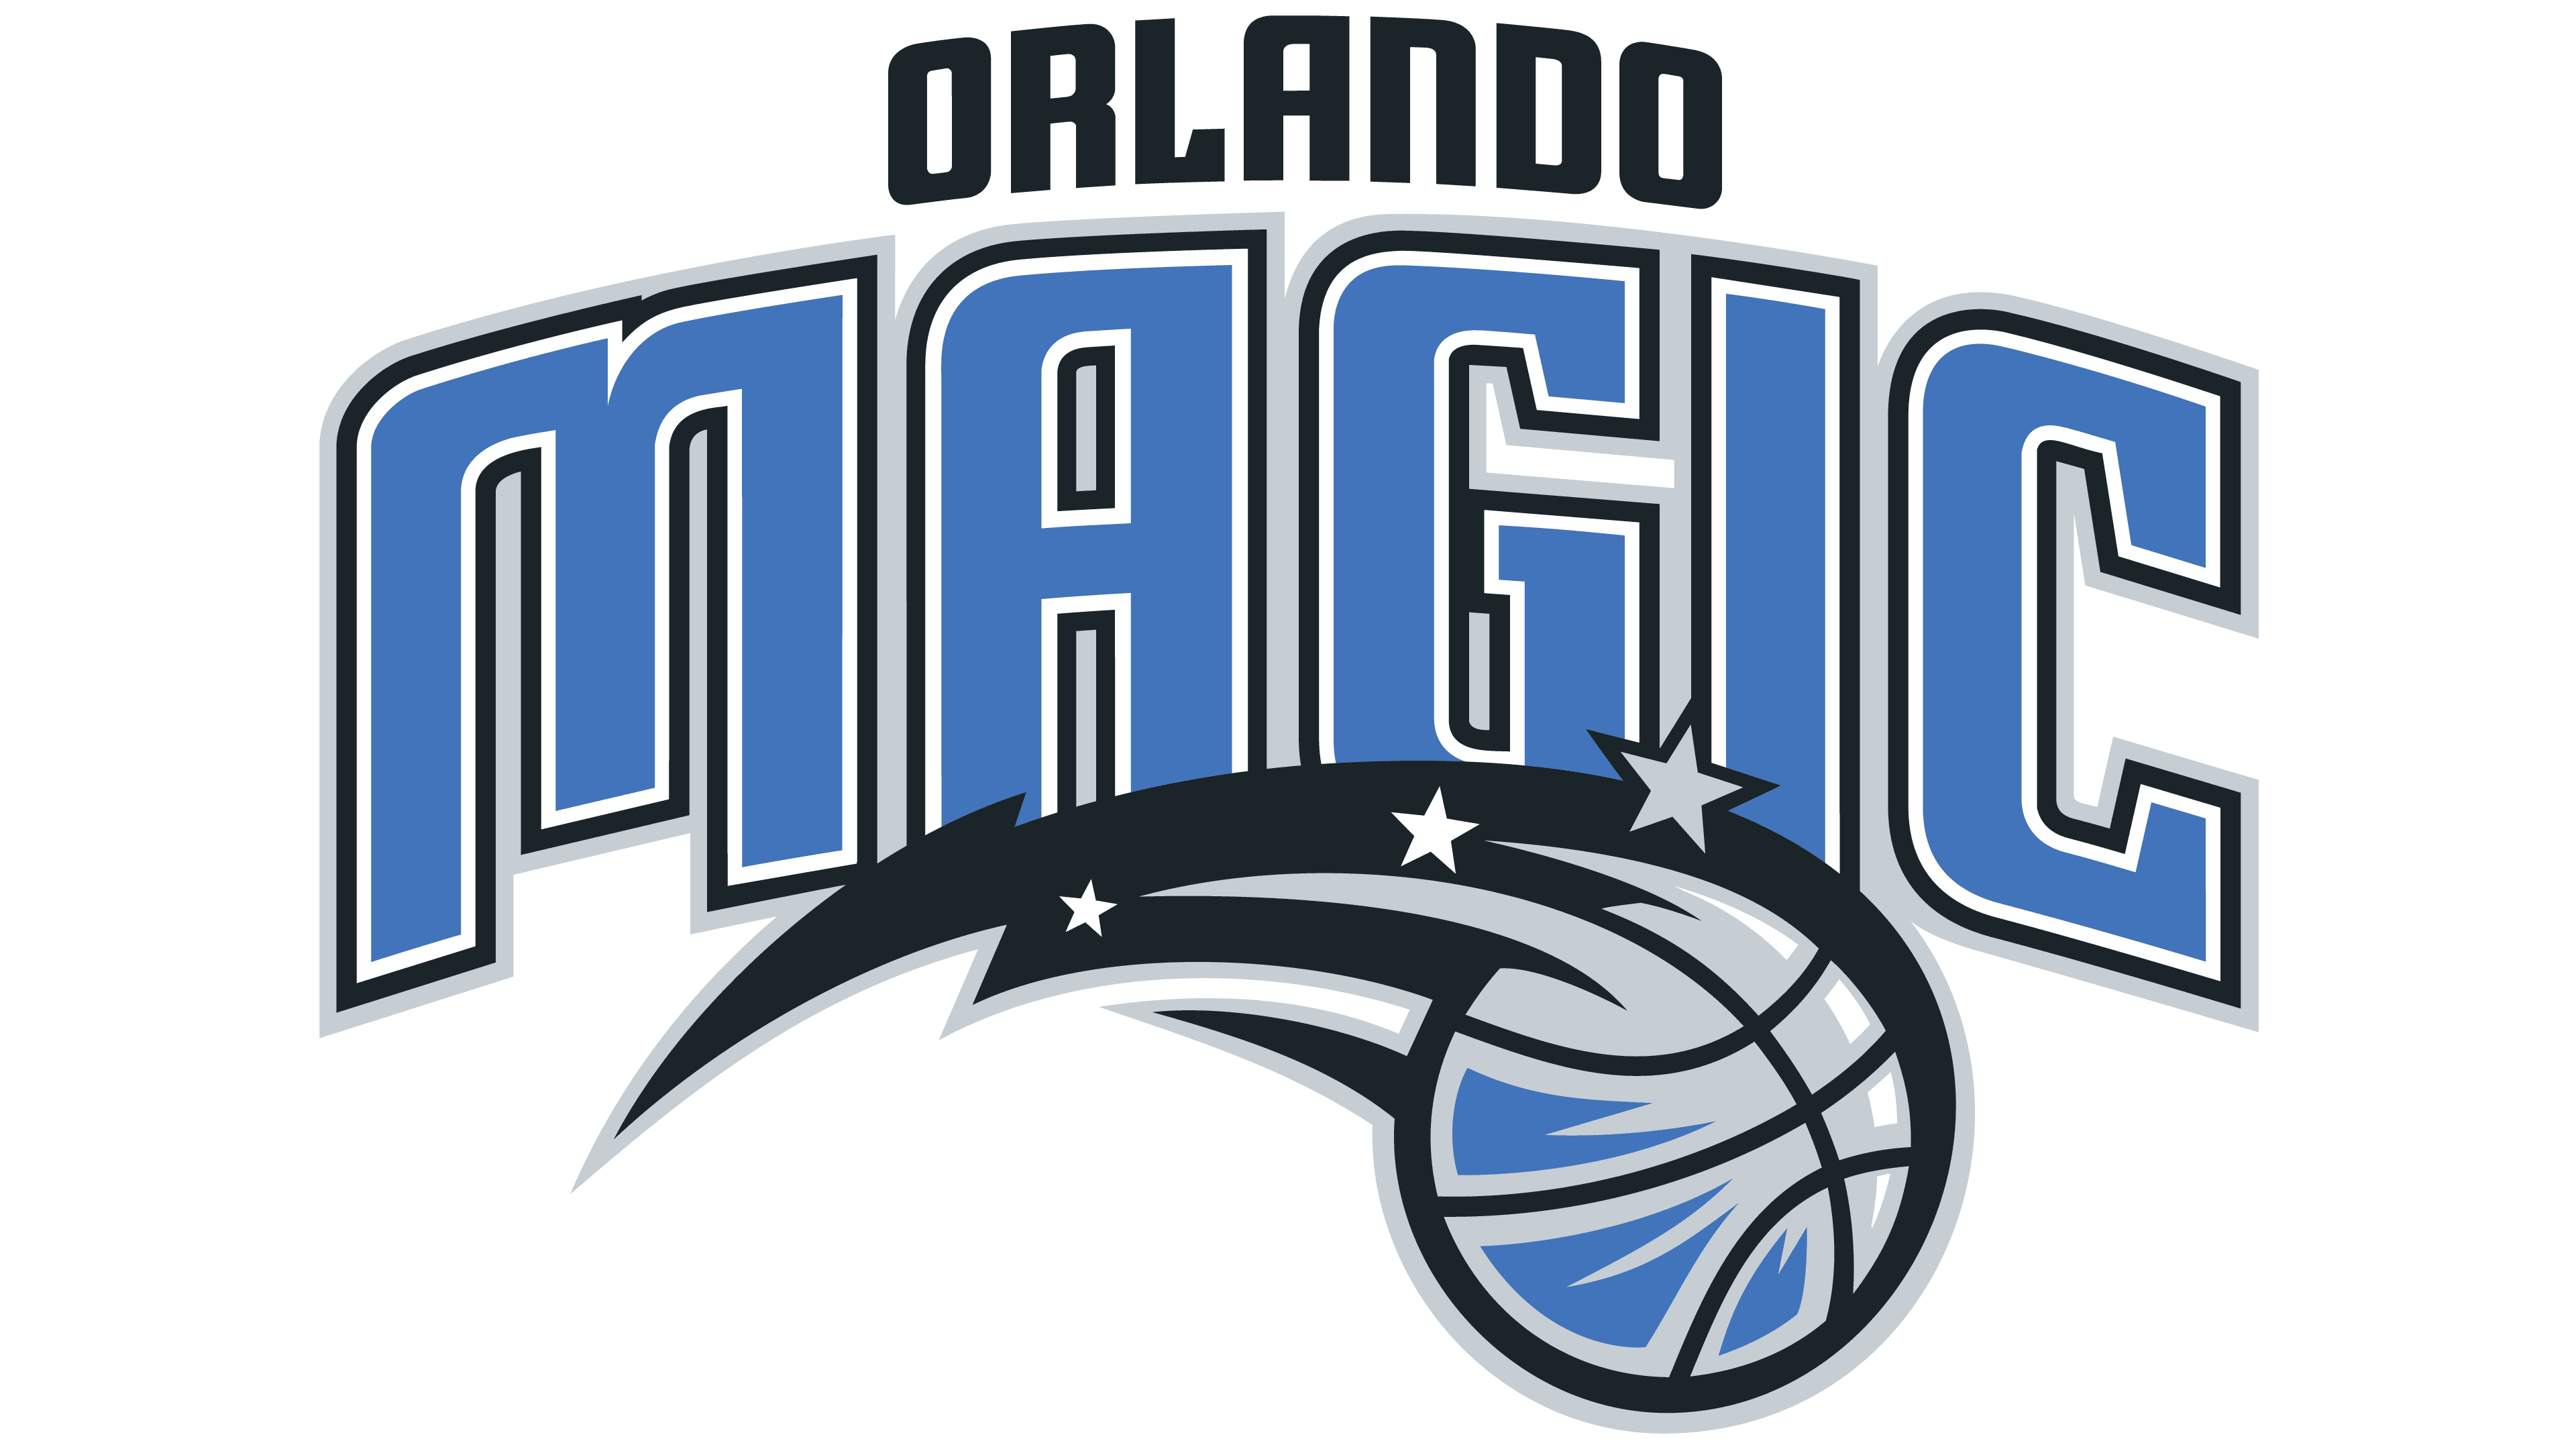 Orlando Magic Logo The Most Famous Brands And Company Logos In The World